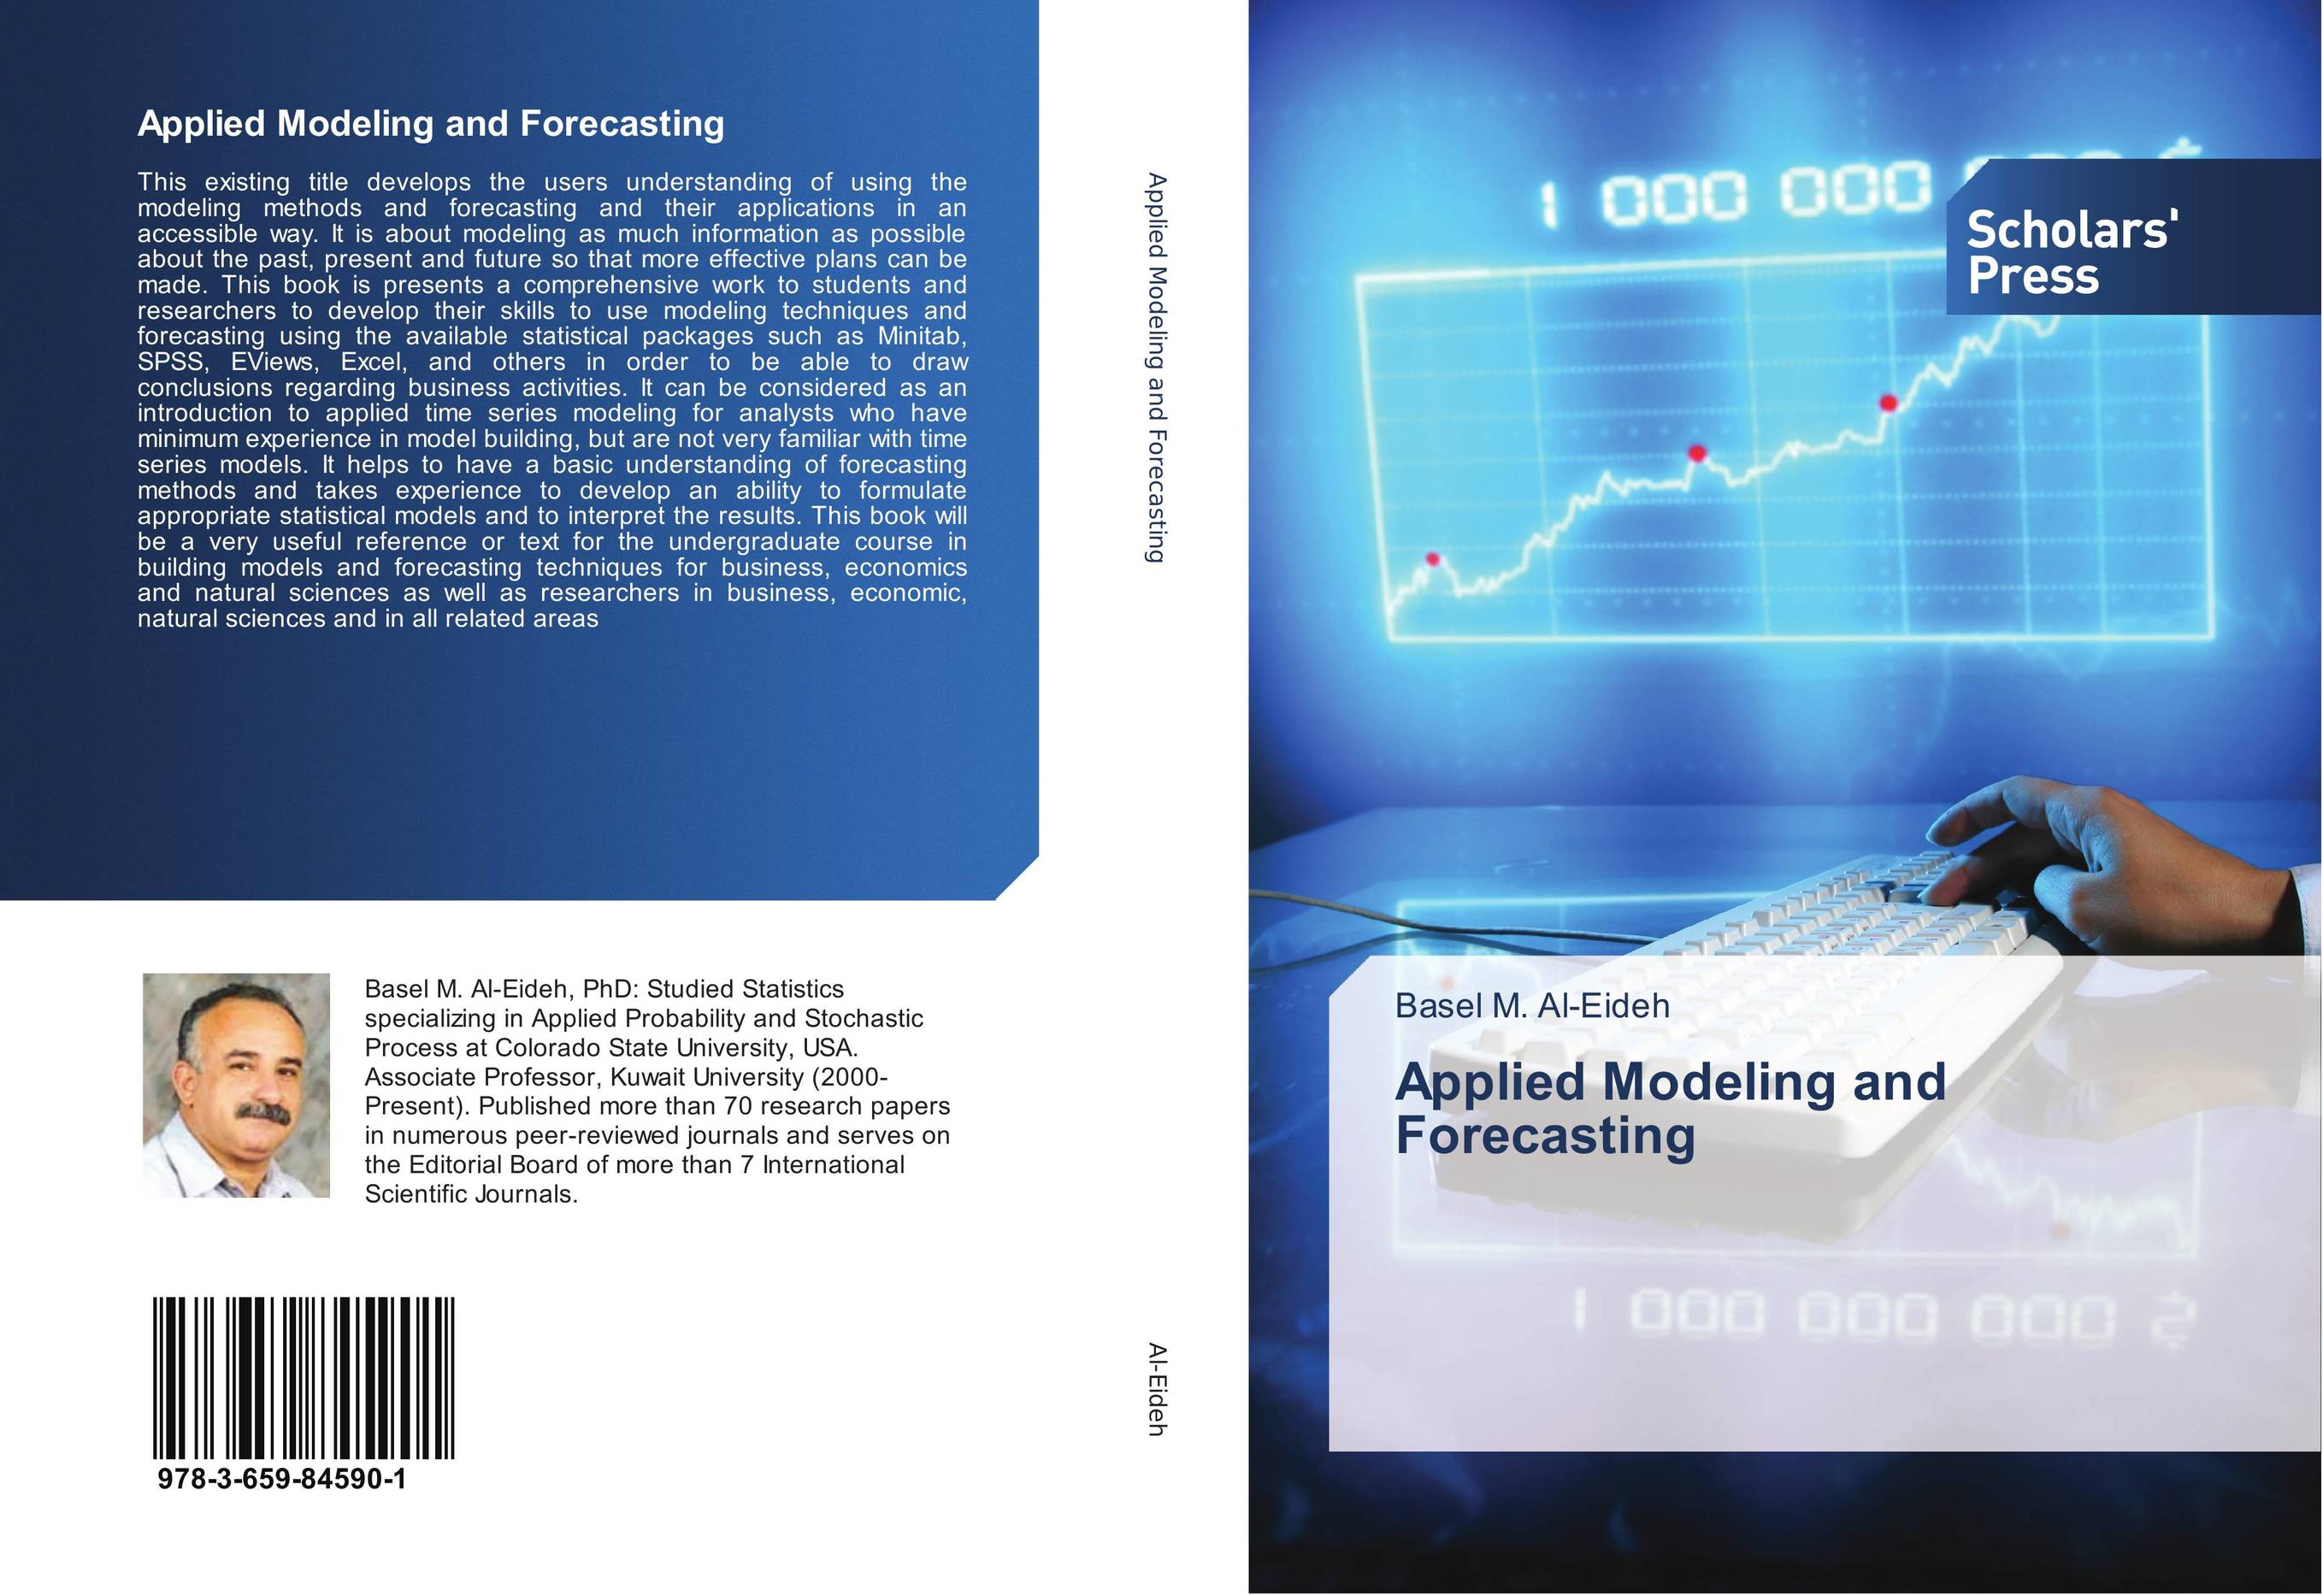 9783659845901 Applied Modeling and Forecasting Basel M. AlEideh